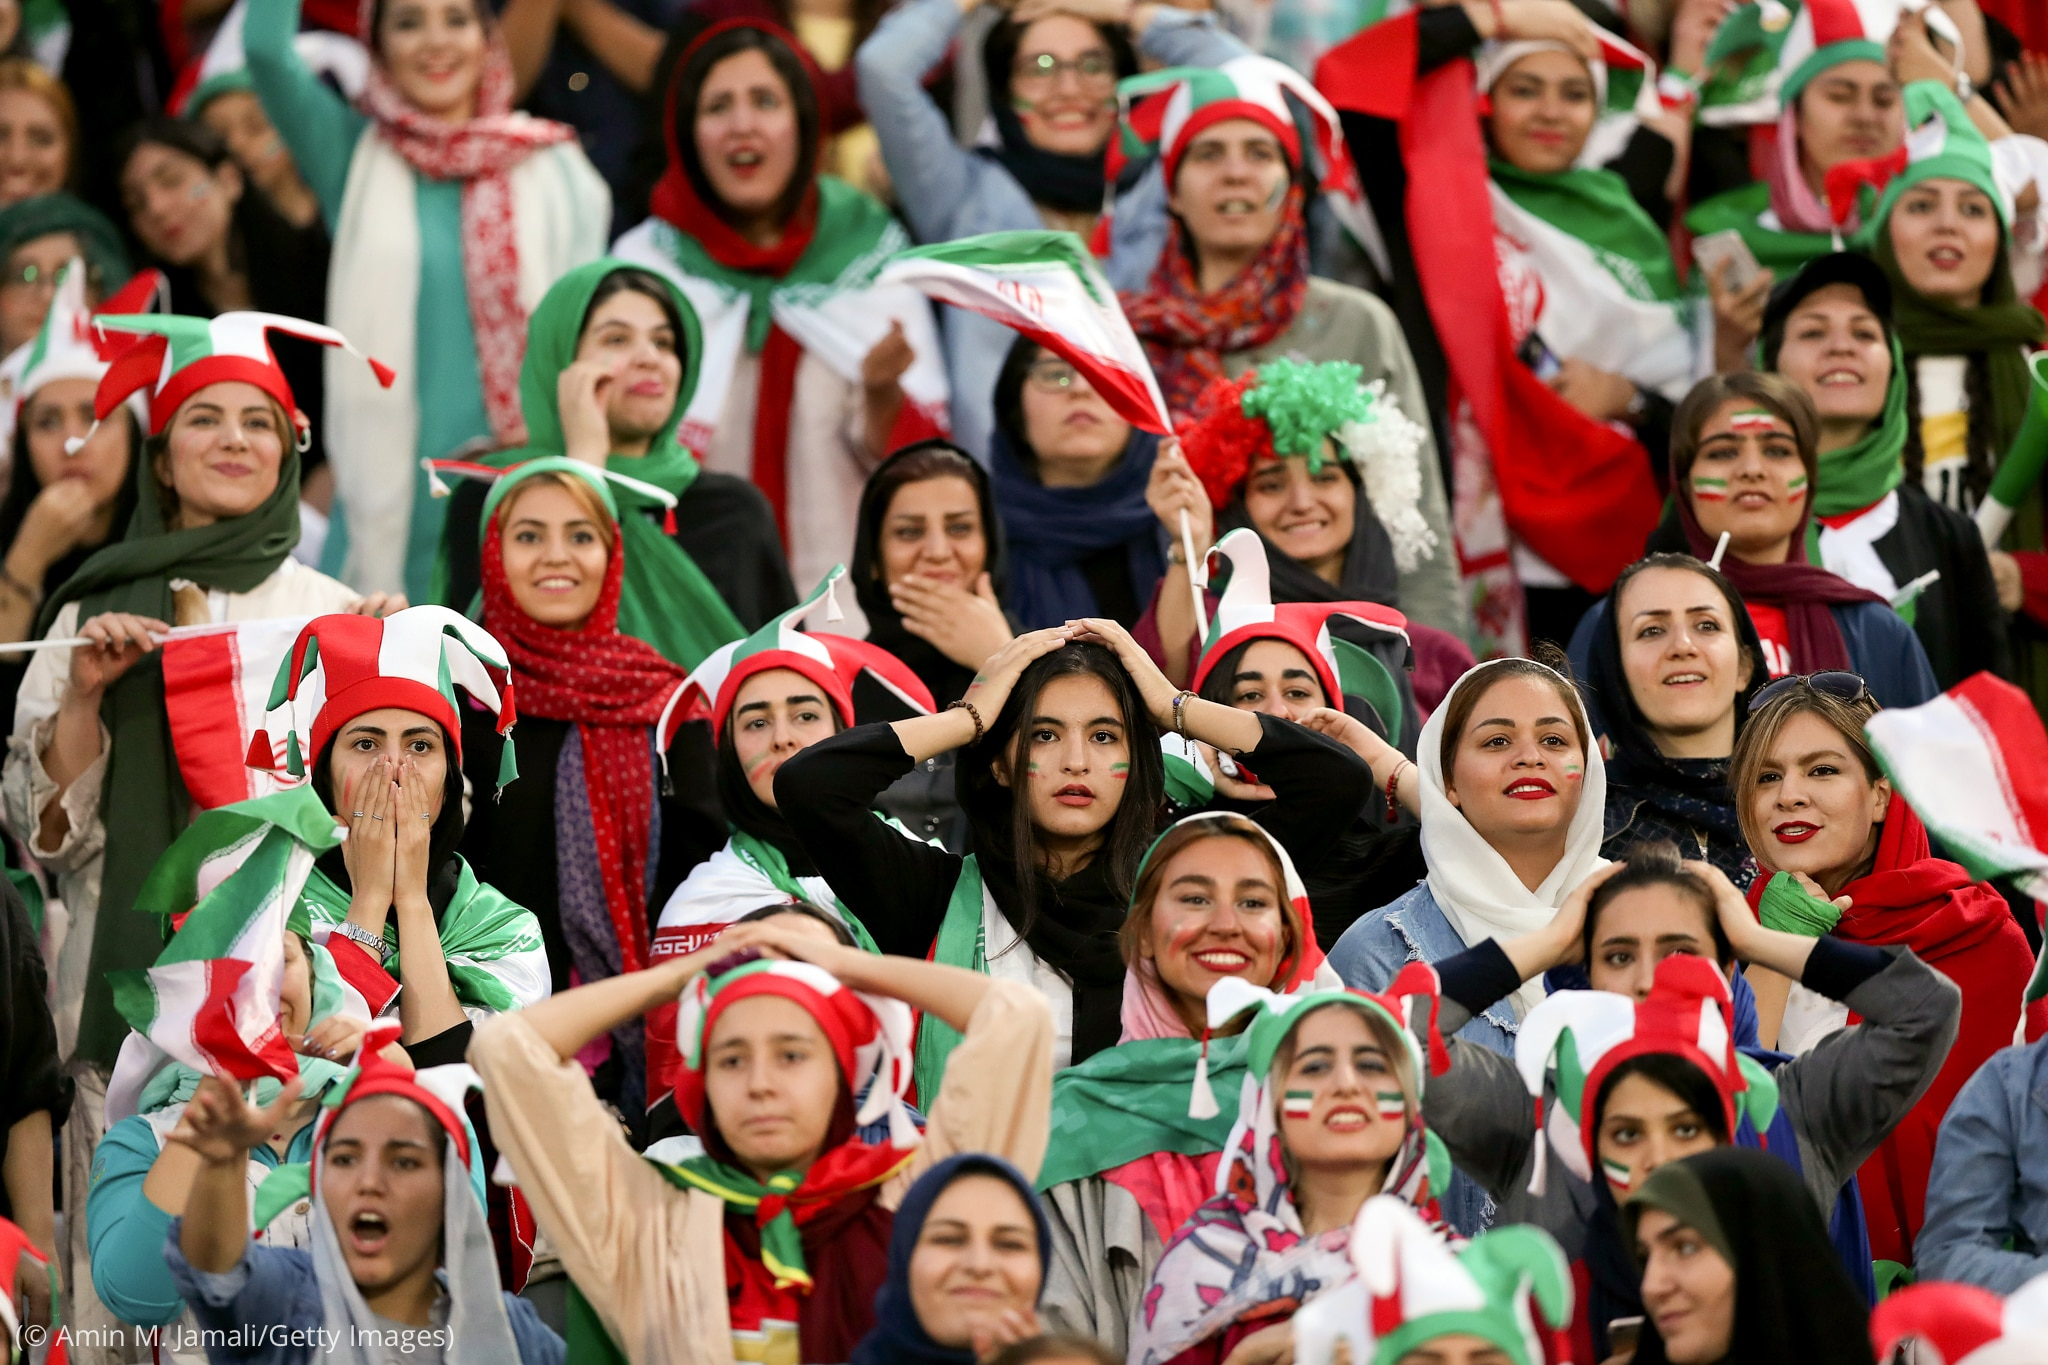 Women in crowd reacting (© Amin M. Jamali/Getty Images)